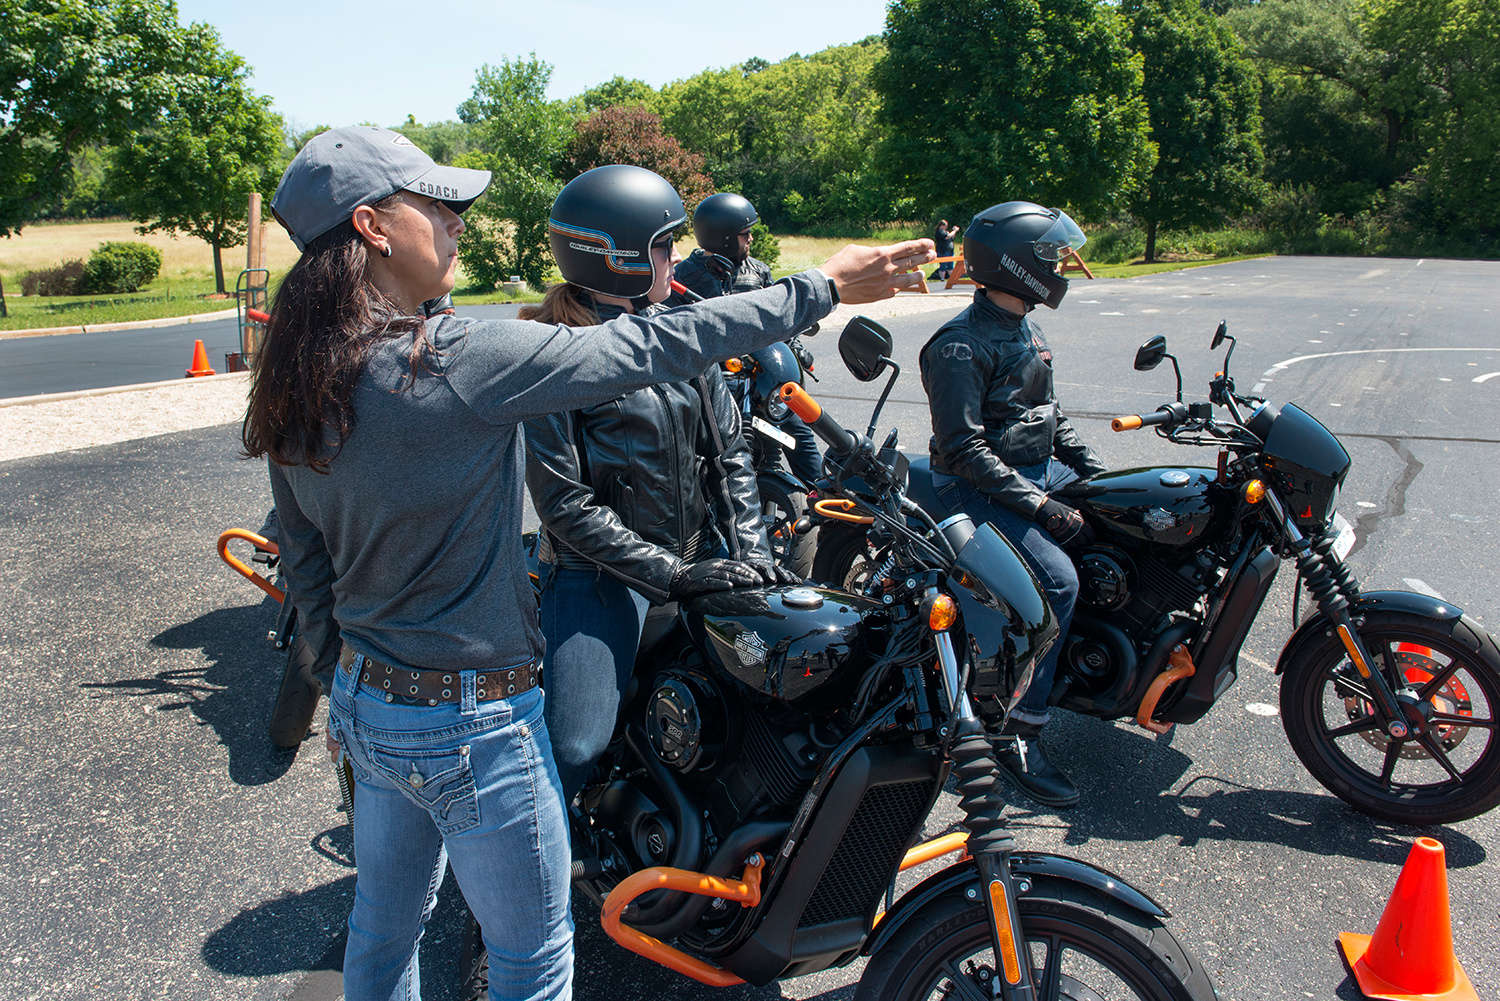 Education - Education does not have to be boring… Check out the following motorcycle classes and organizations.Learn more ➝